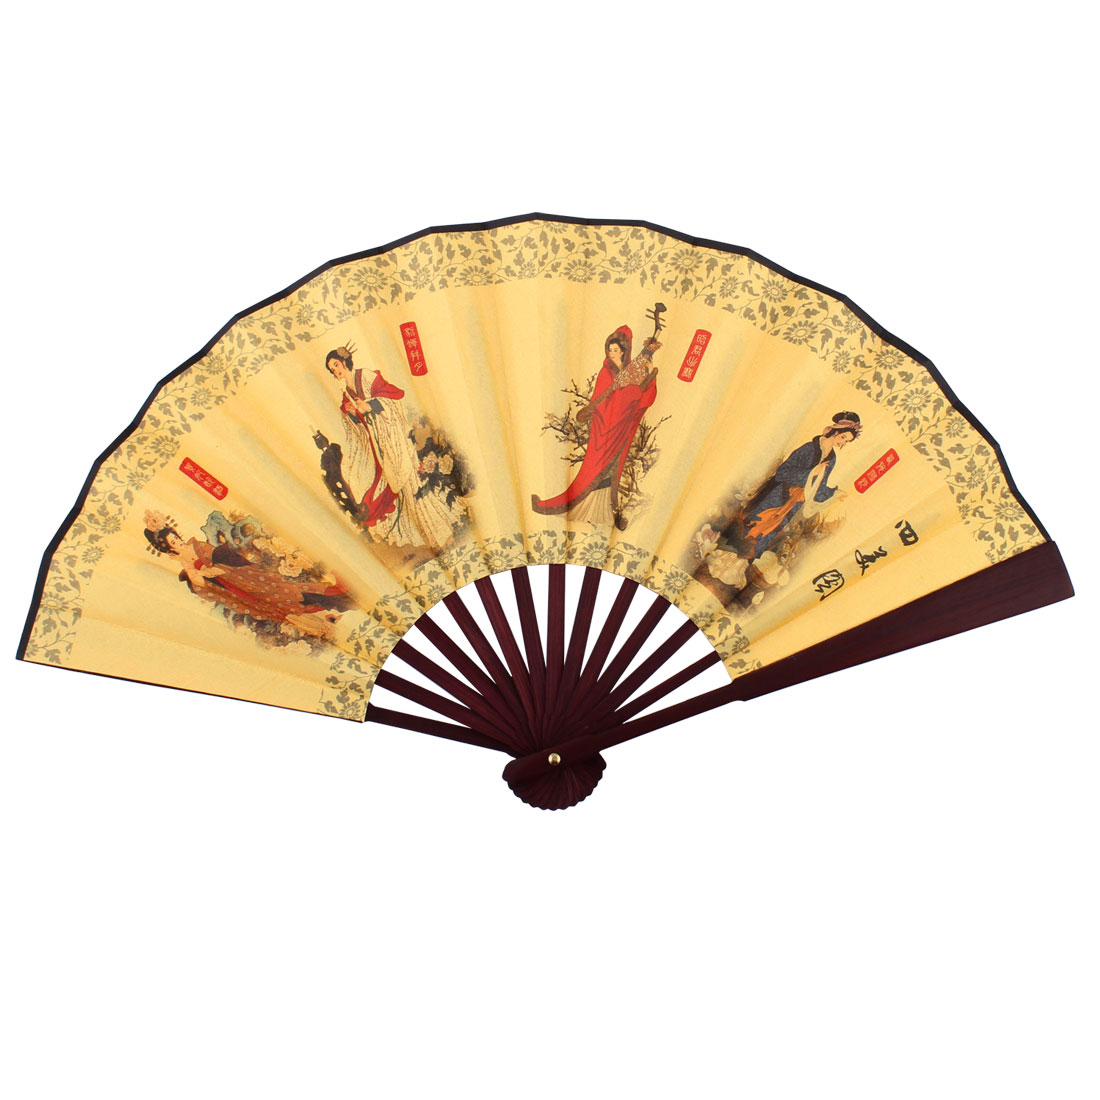 Wooden Frame Four Beauties Pattern Chinese Retro Style Folding Handheld Fan Yellow